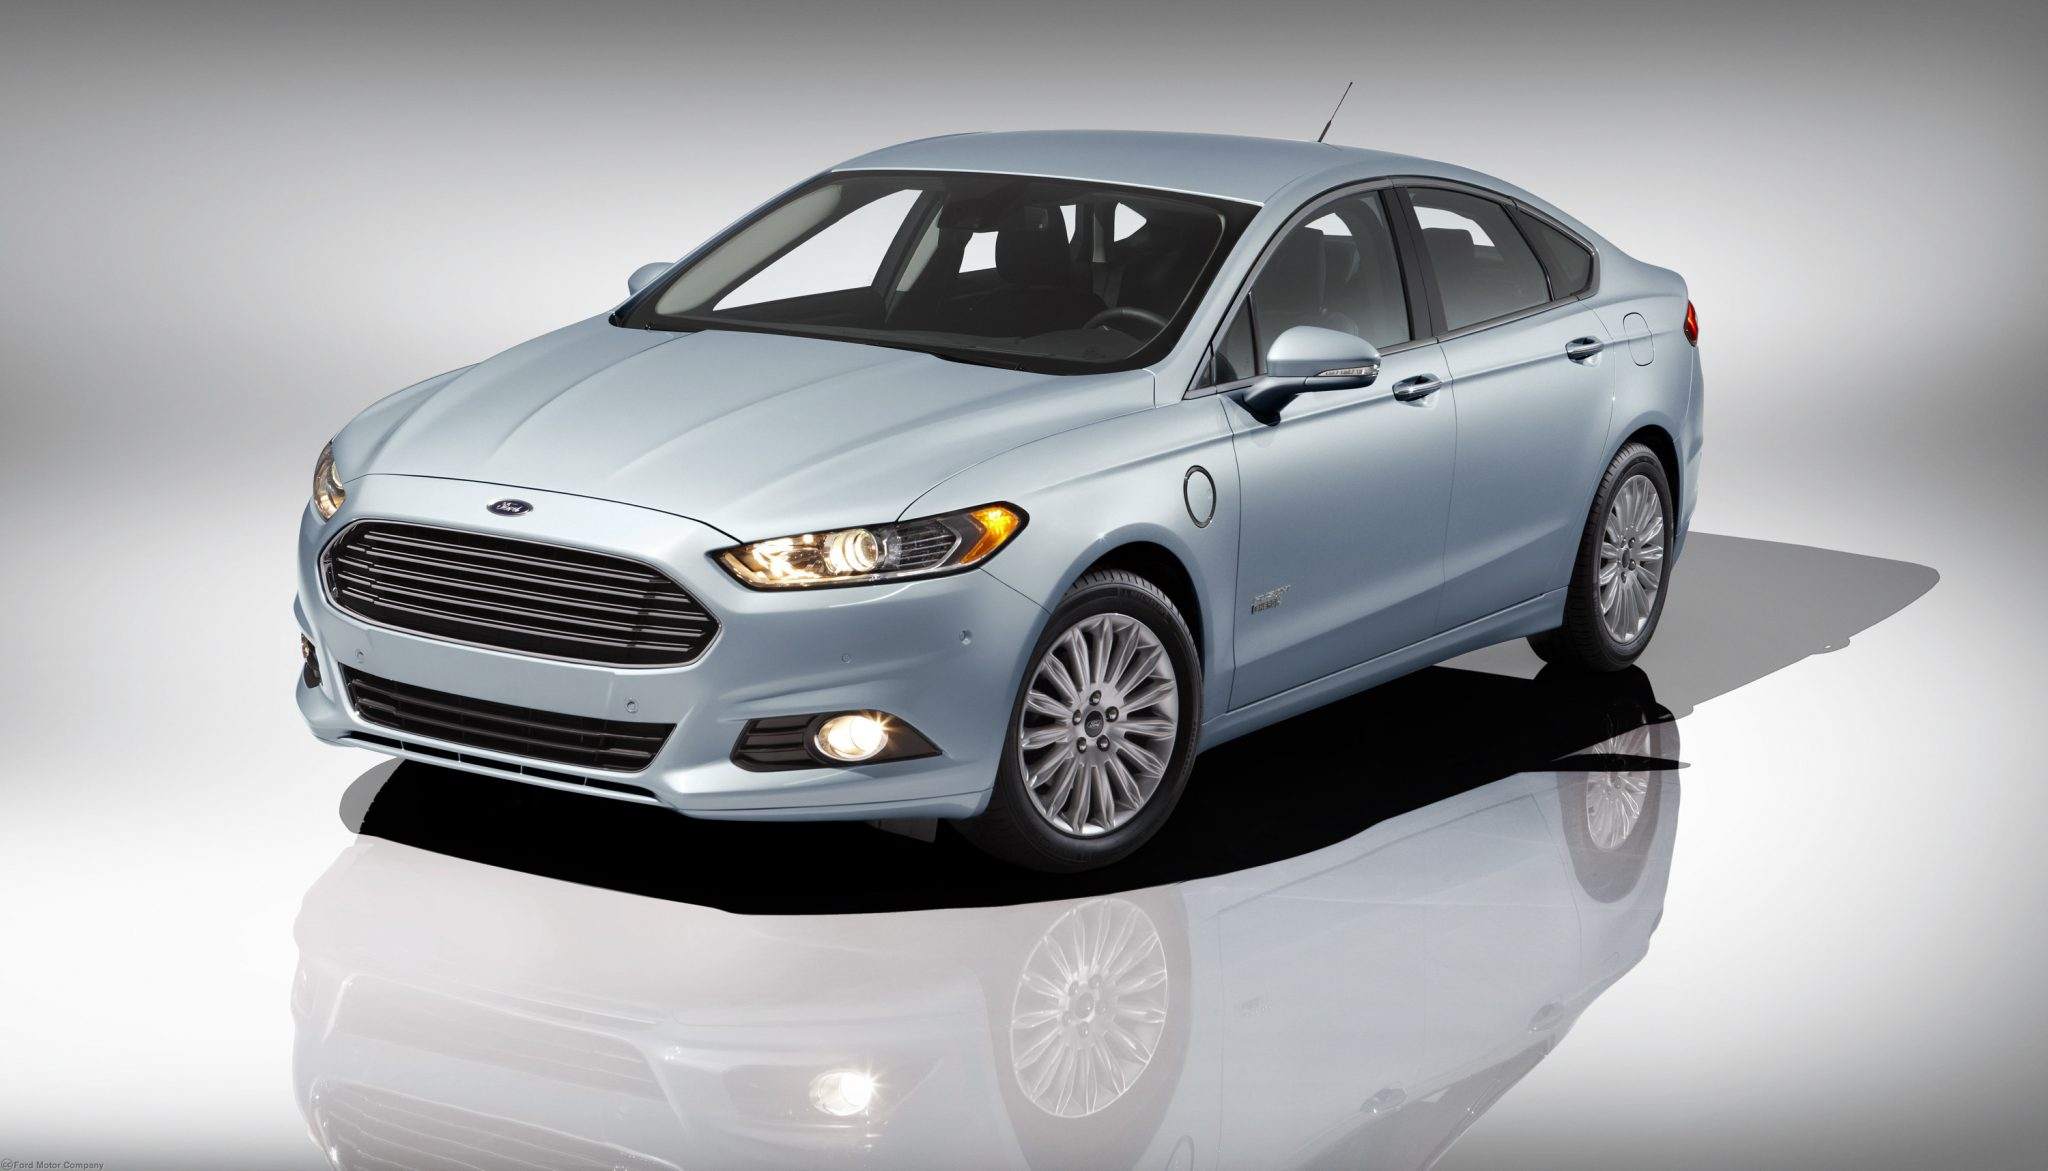 2014 ford fusion energi overview the news wheel. Black Bedroom Furniture Sets. Home Design Ideas